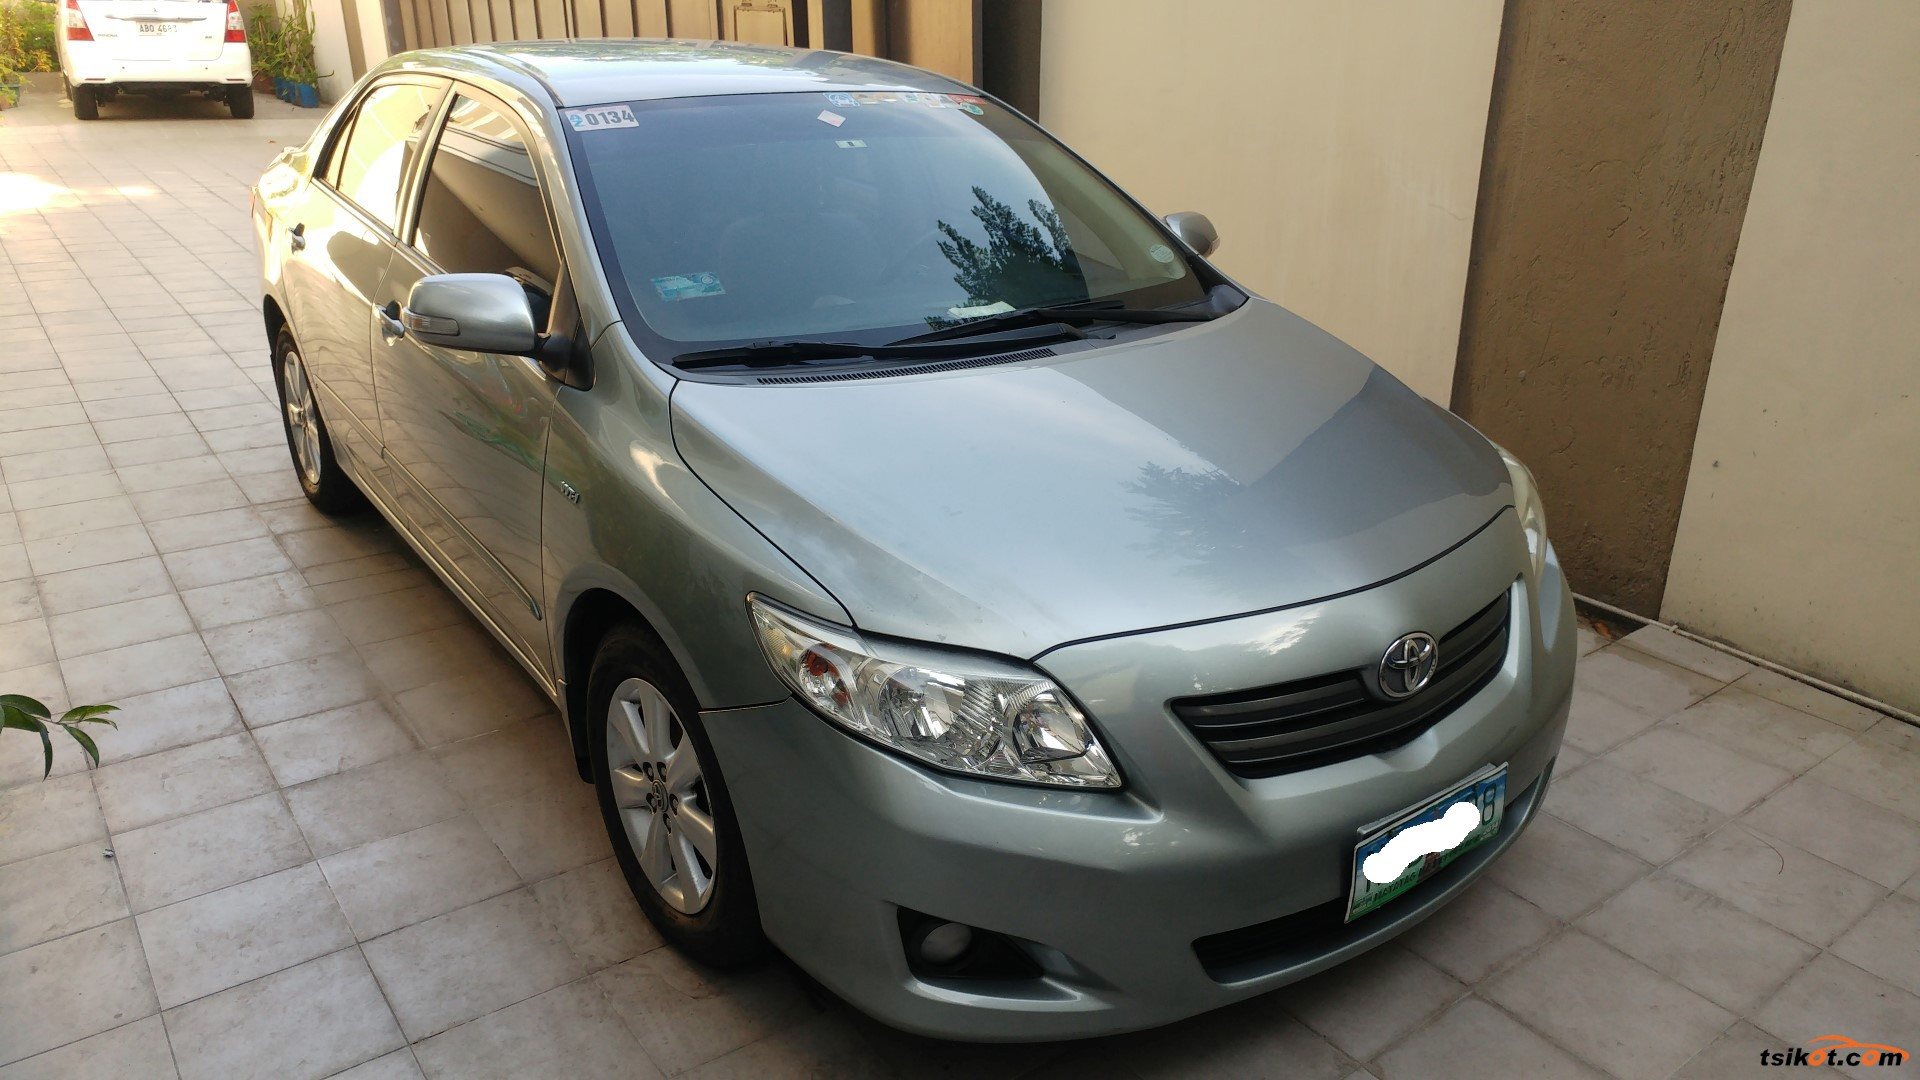 Used Toyota Corolla 2010 >> Toyota Corolla 2010 - Car for Sale Metro Manila